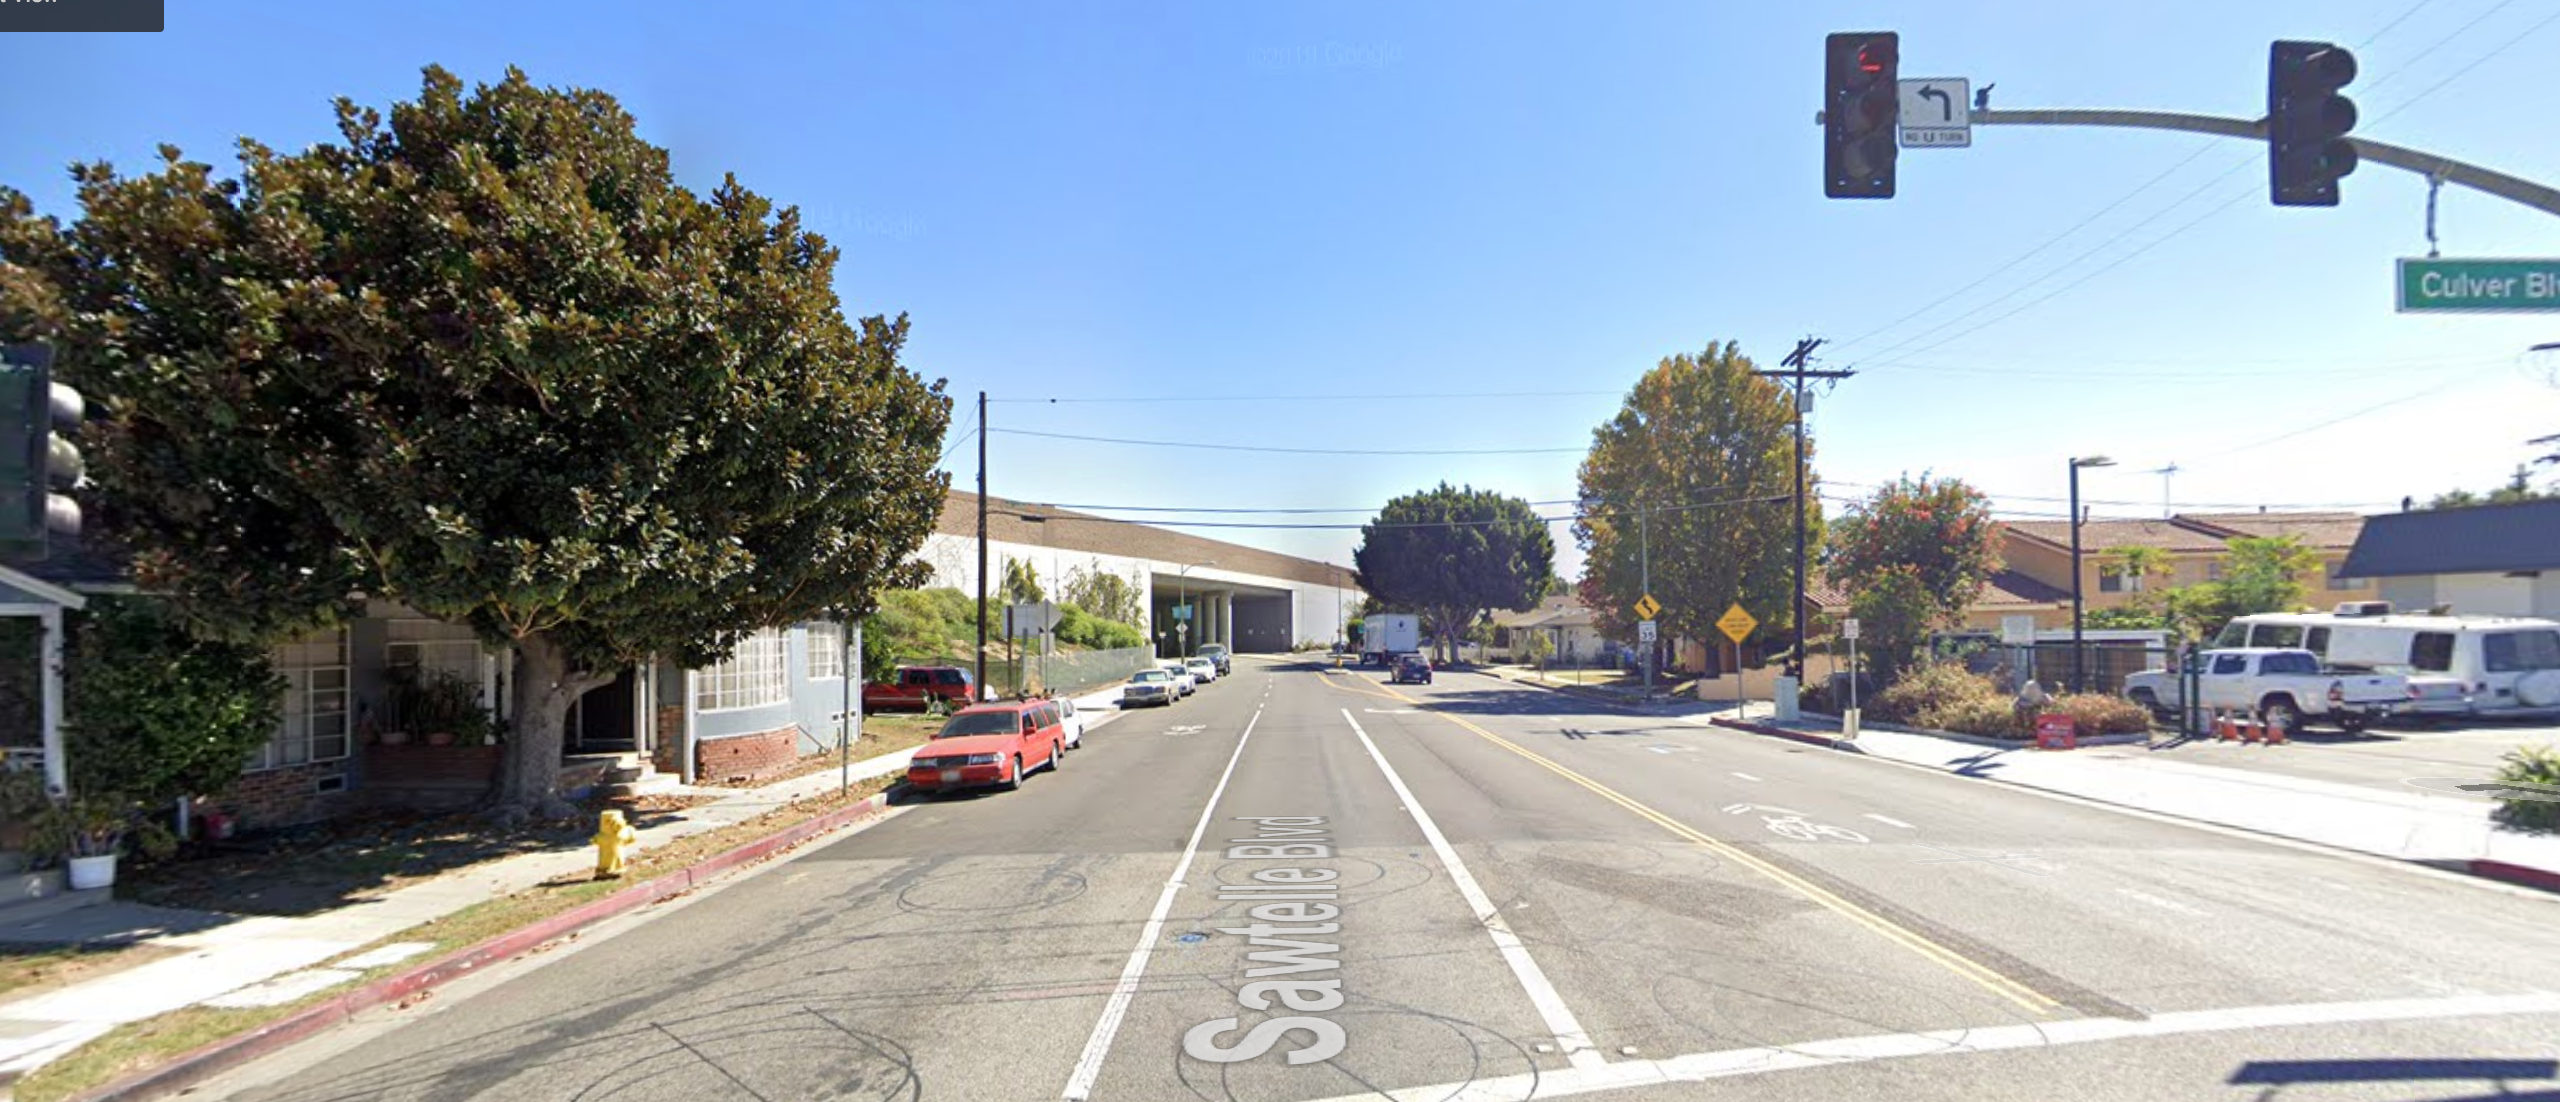 The 4300 block of Sawtelle Boulevard in Culver City is seen in an undated photo from Google Maps street view.